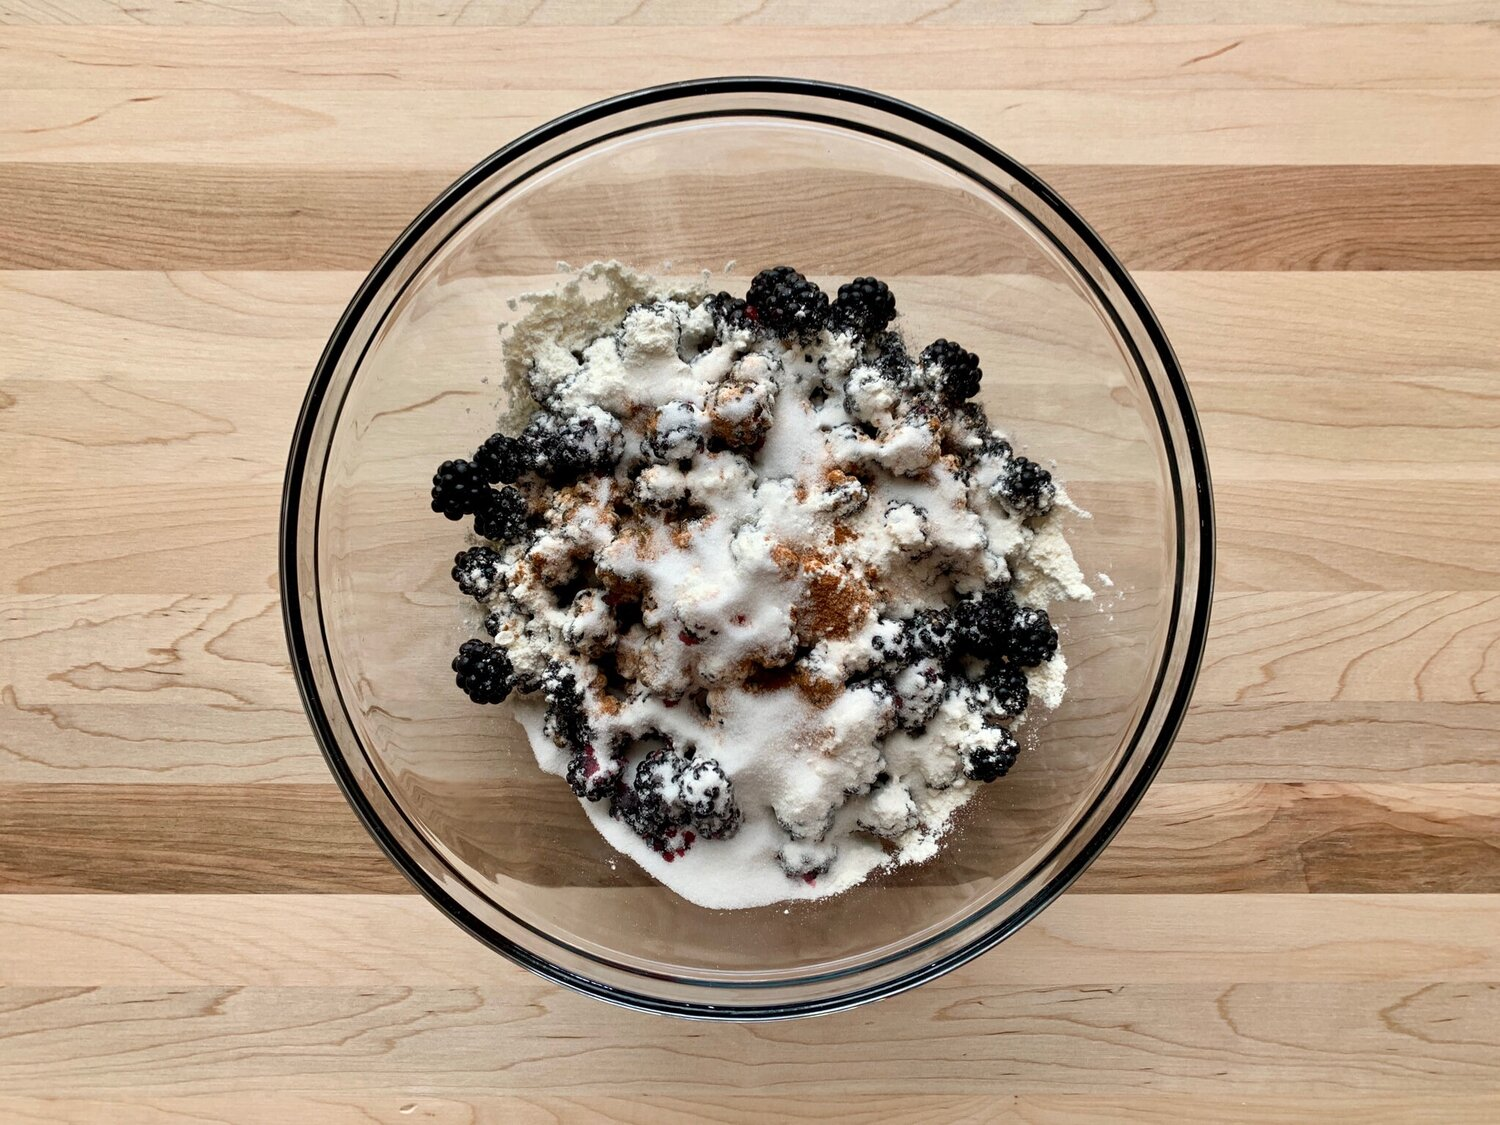 2. Add blackberries to a large bowl. Sprinkle blackberries with sugar, flour, cornstarch, and cinnamon. Gently stir until fully combined. Let sit for 5 minutes. -